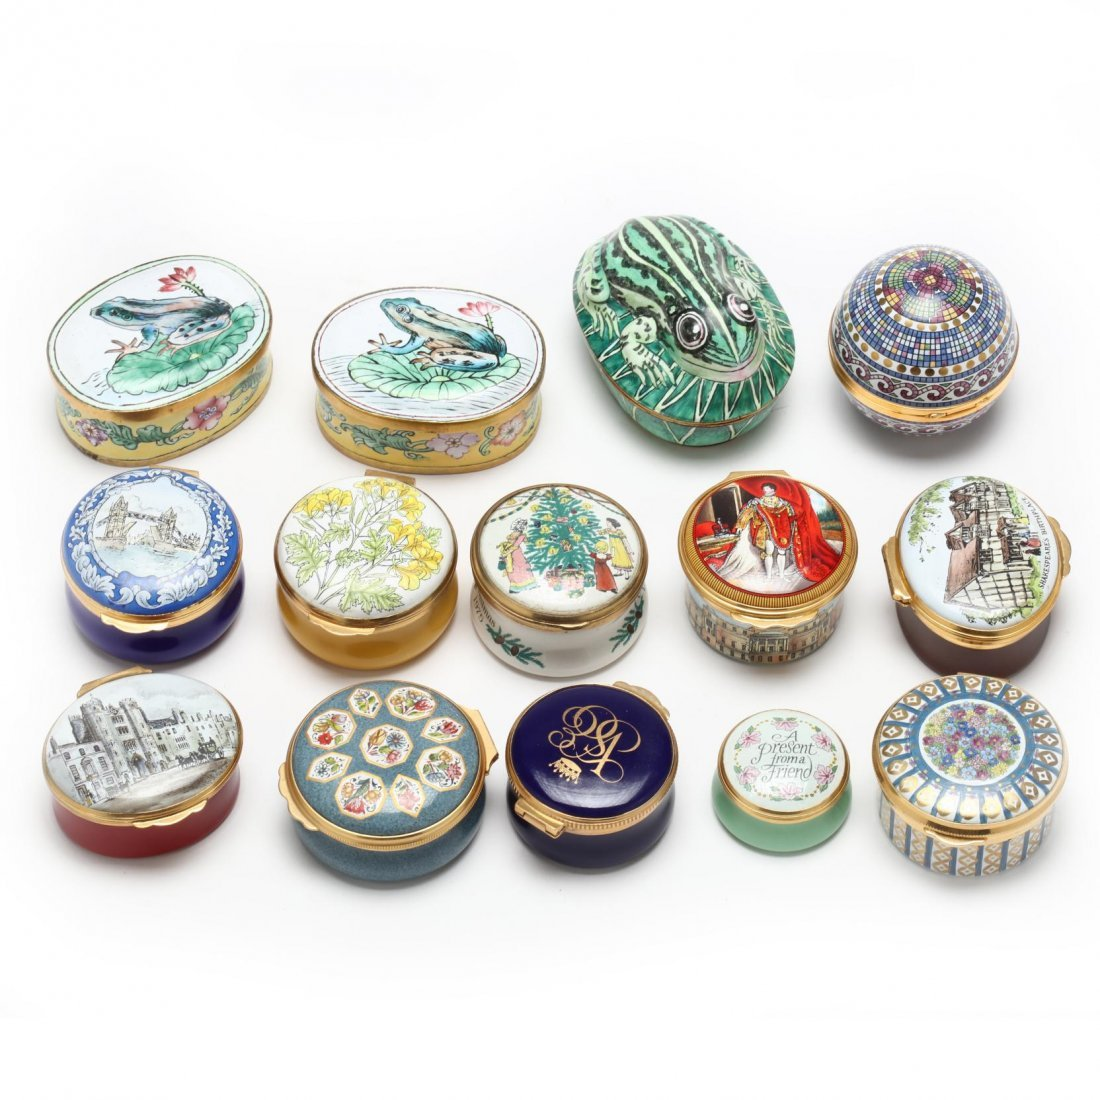 Group of 14 Enameled Boxes